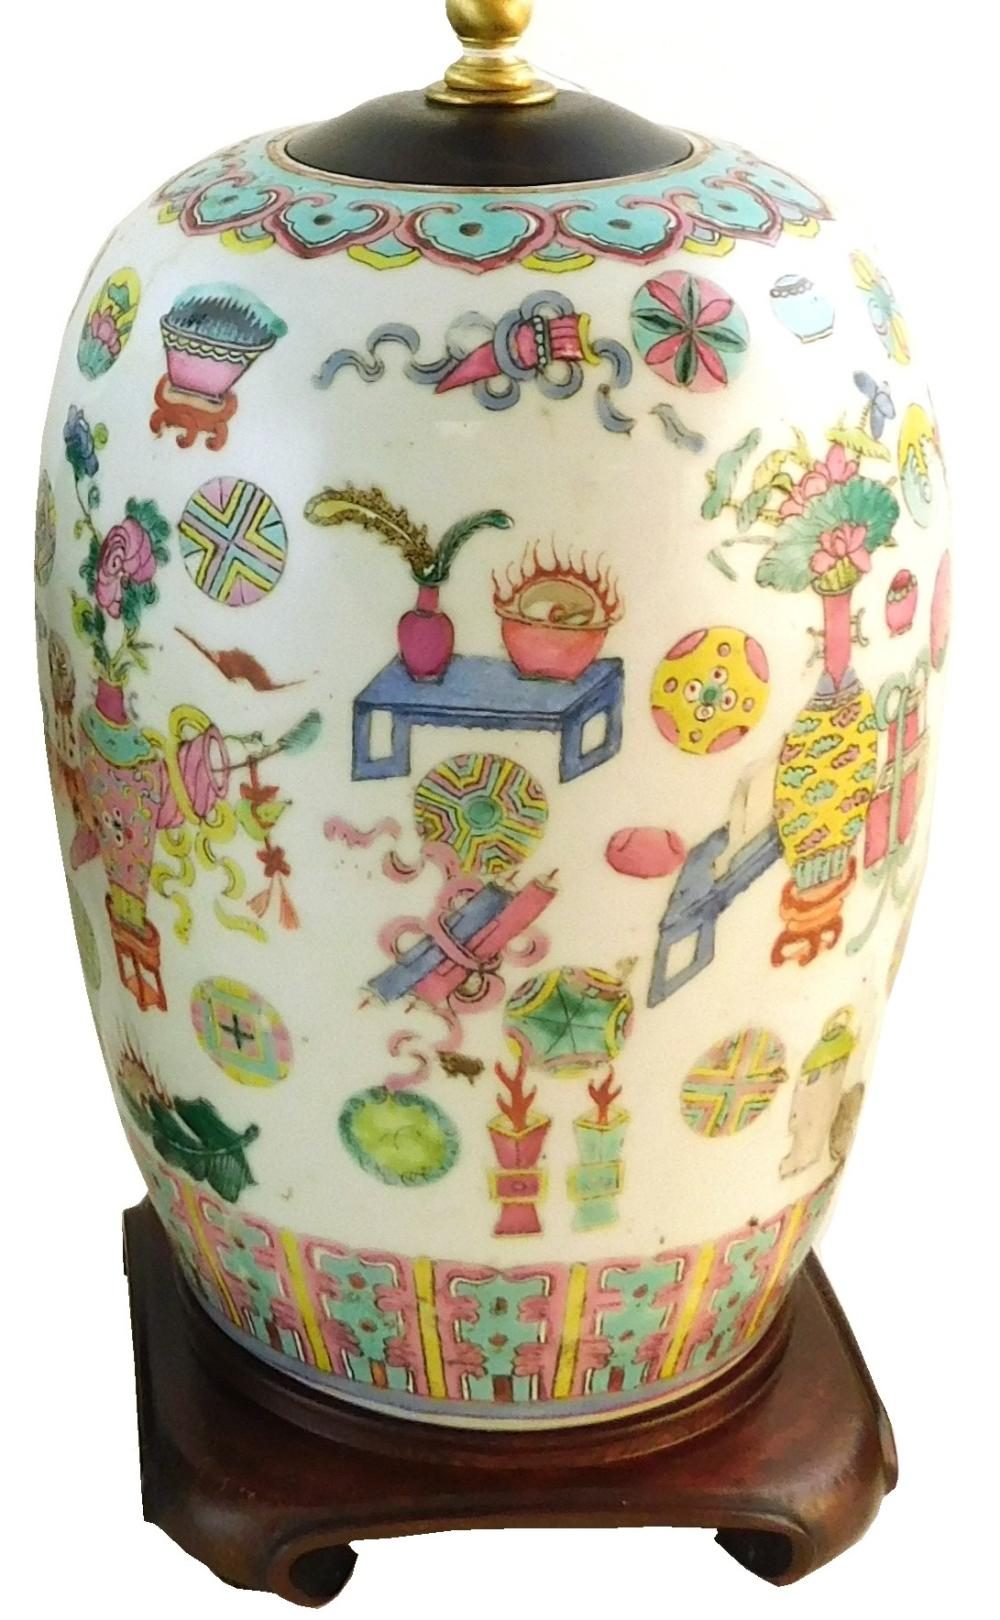 ASIAN: Two Chinese porcelain vessels converted to lamps, including: Famille rose porcelain urn electrified as lamp, rounded form, ma...